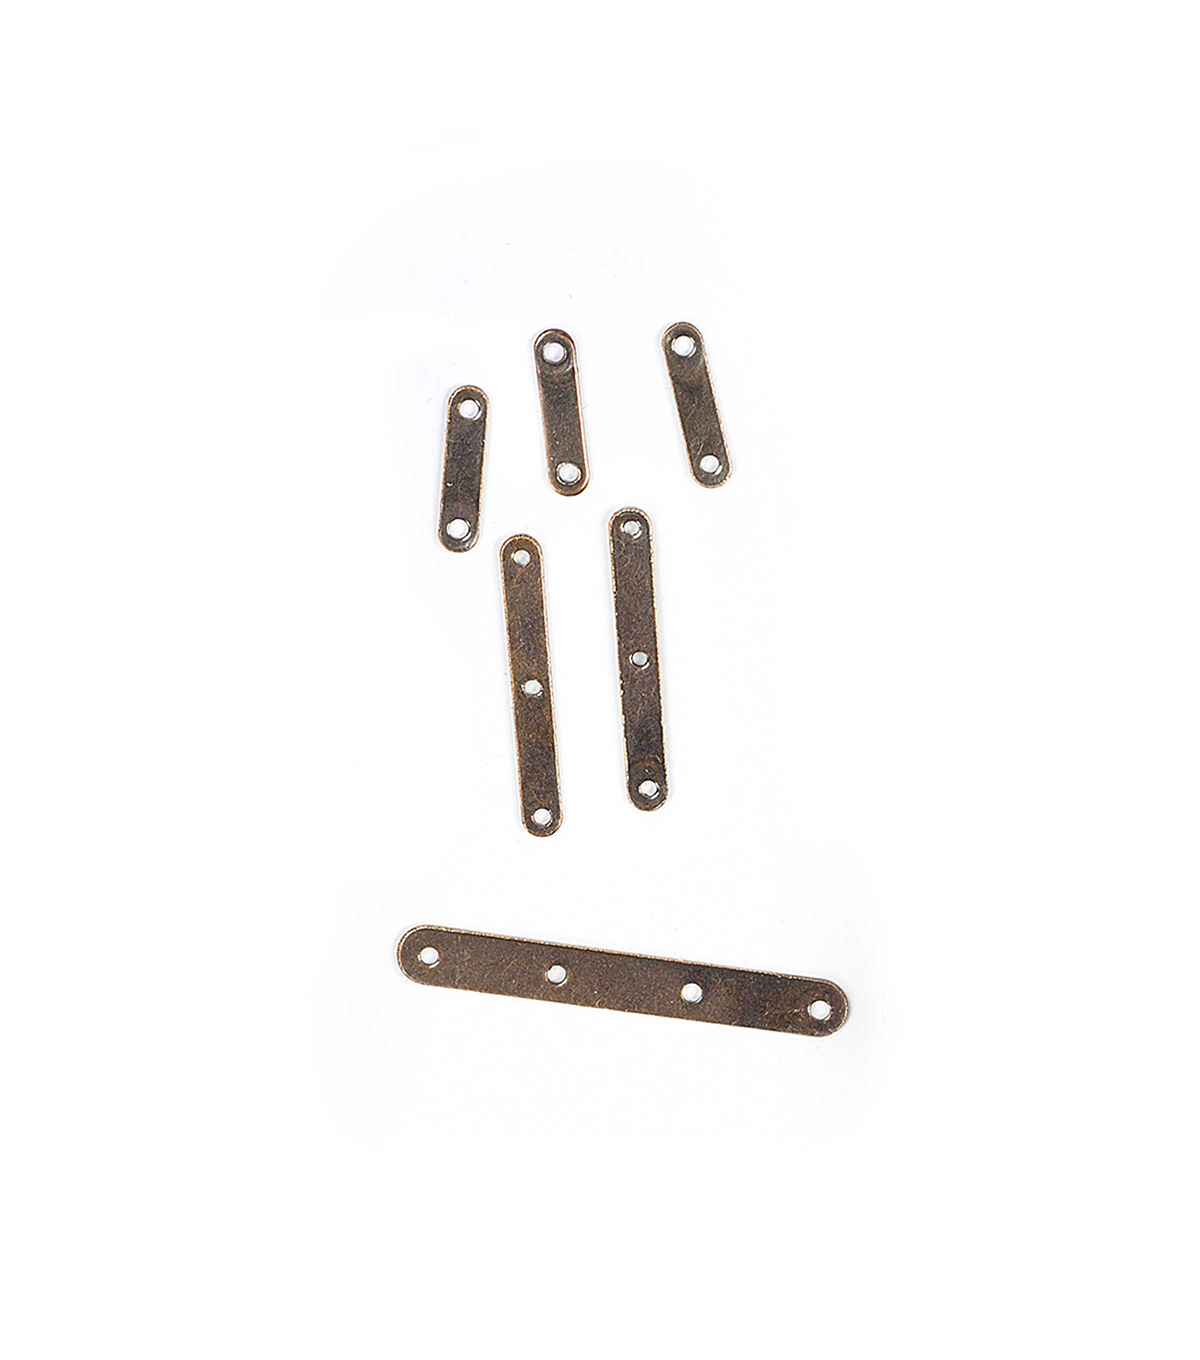 Blue Moon Findings Spacer Bar Metal Multi Pack Plain Oxidized Copper